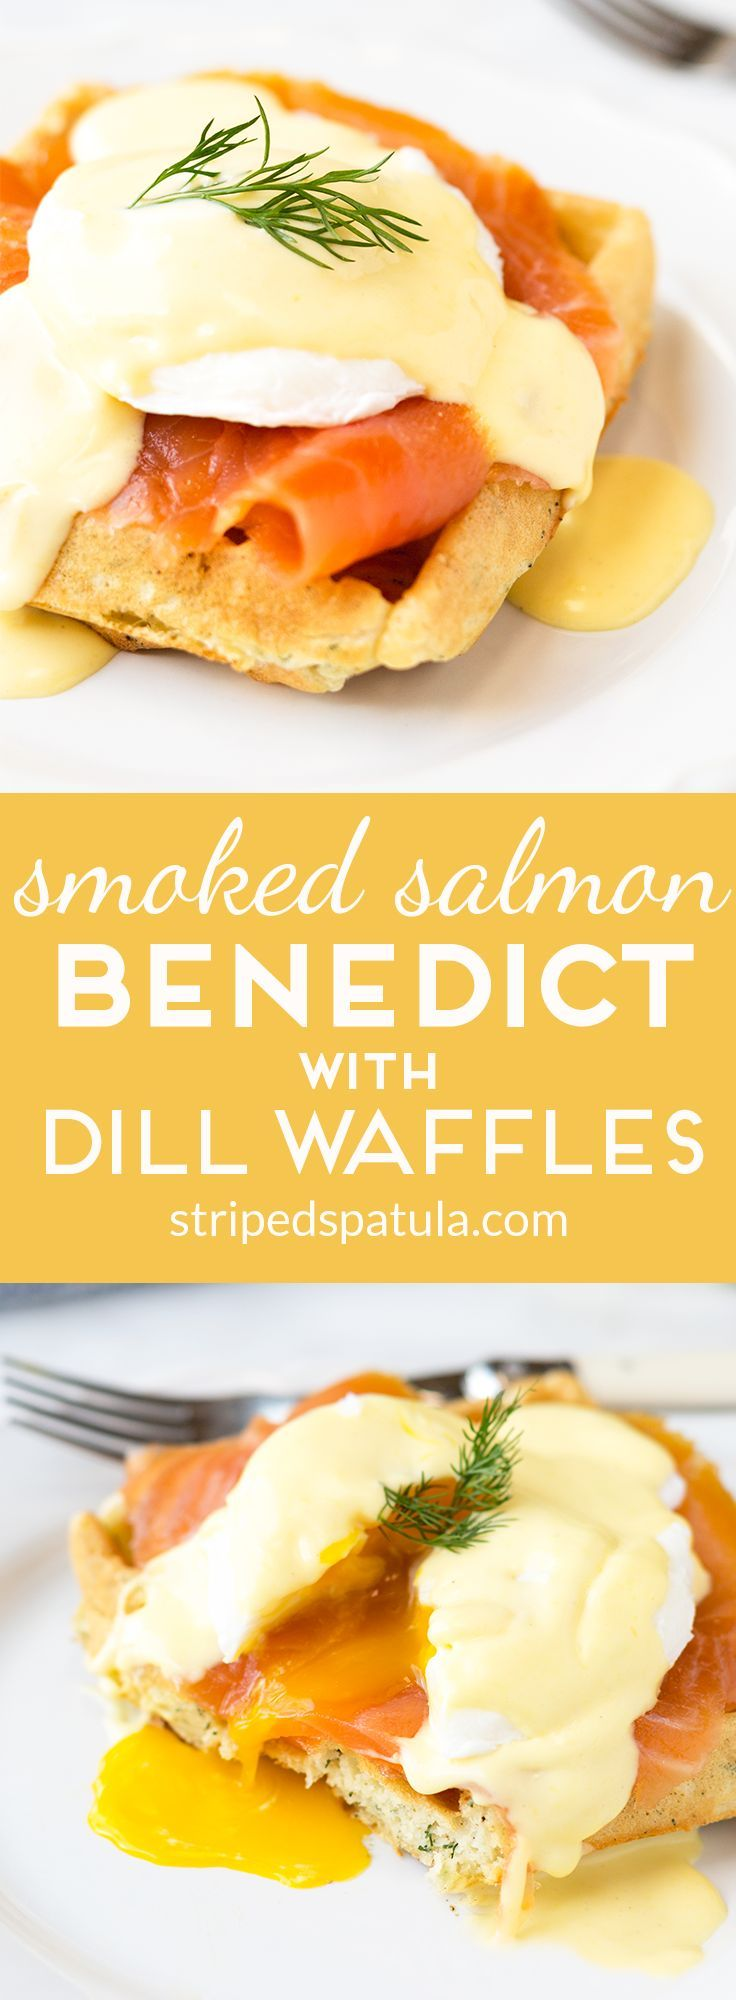 Served atop crisp, savory dill waffles, Smoked Salmon Eggs Benedict combines some of the best flavors of brunch into a single bite!